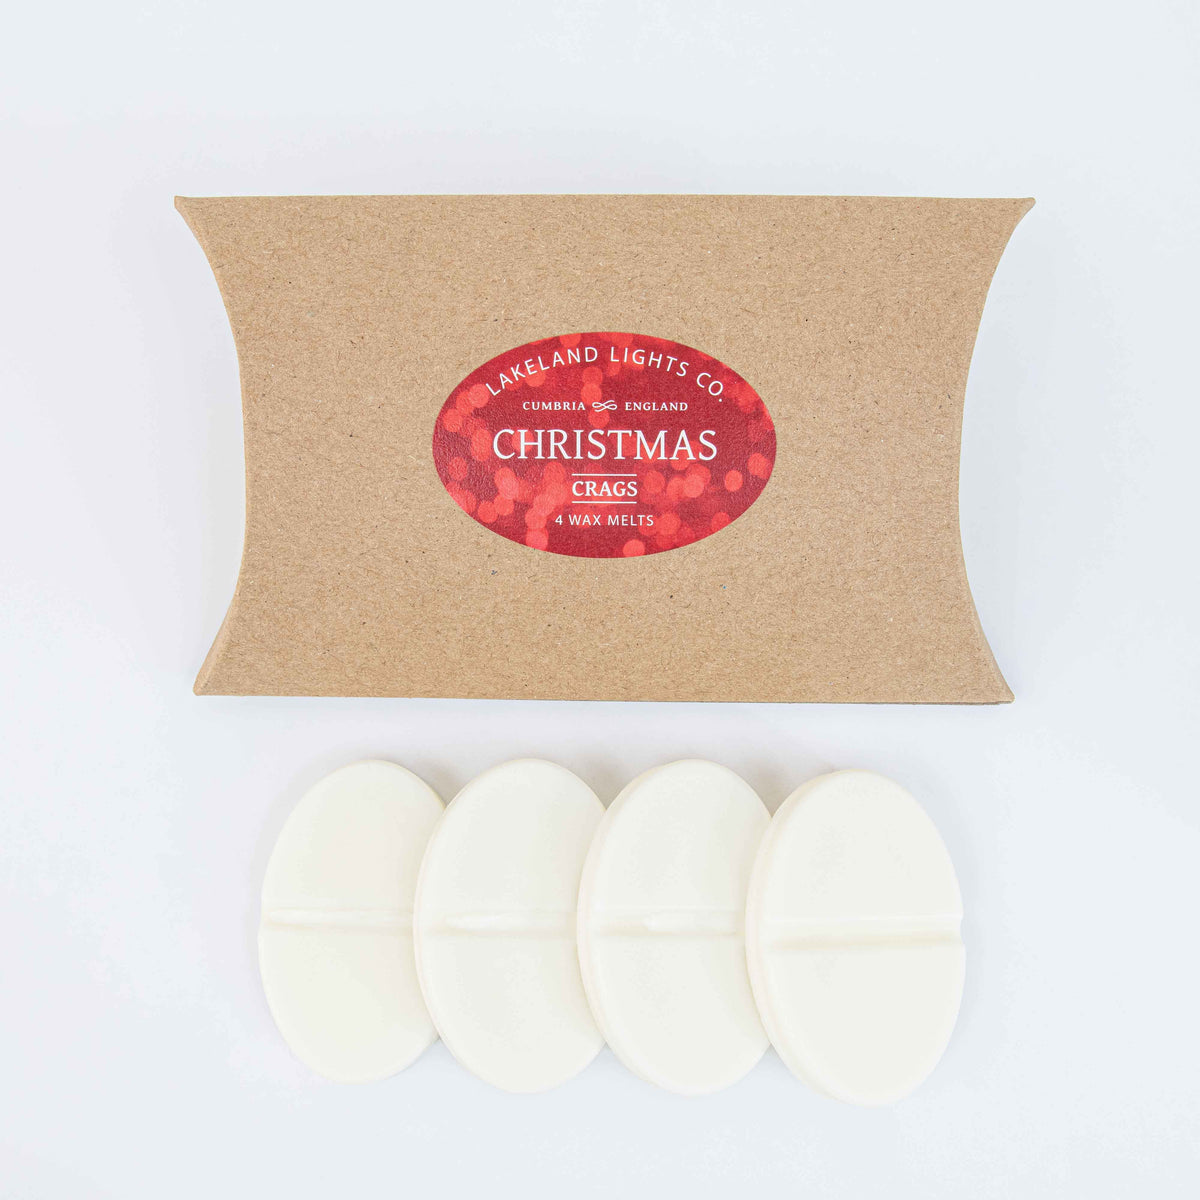 Christmas Crags Wax Melts